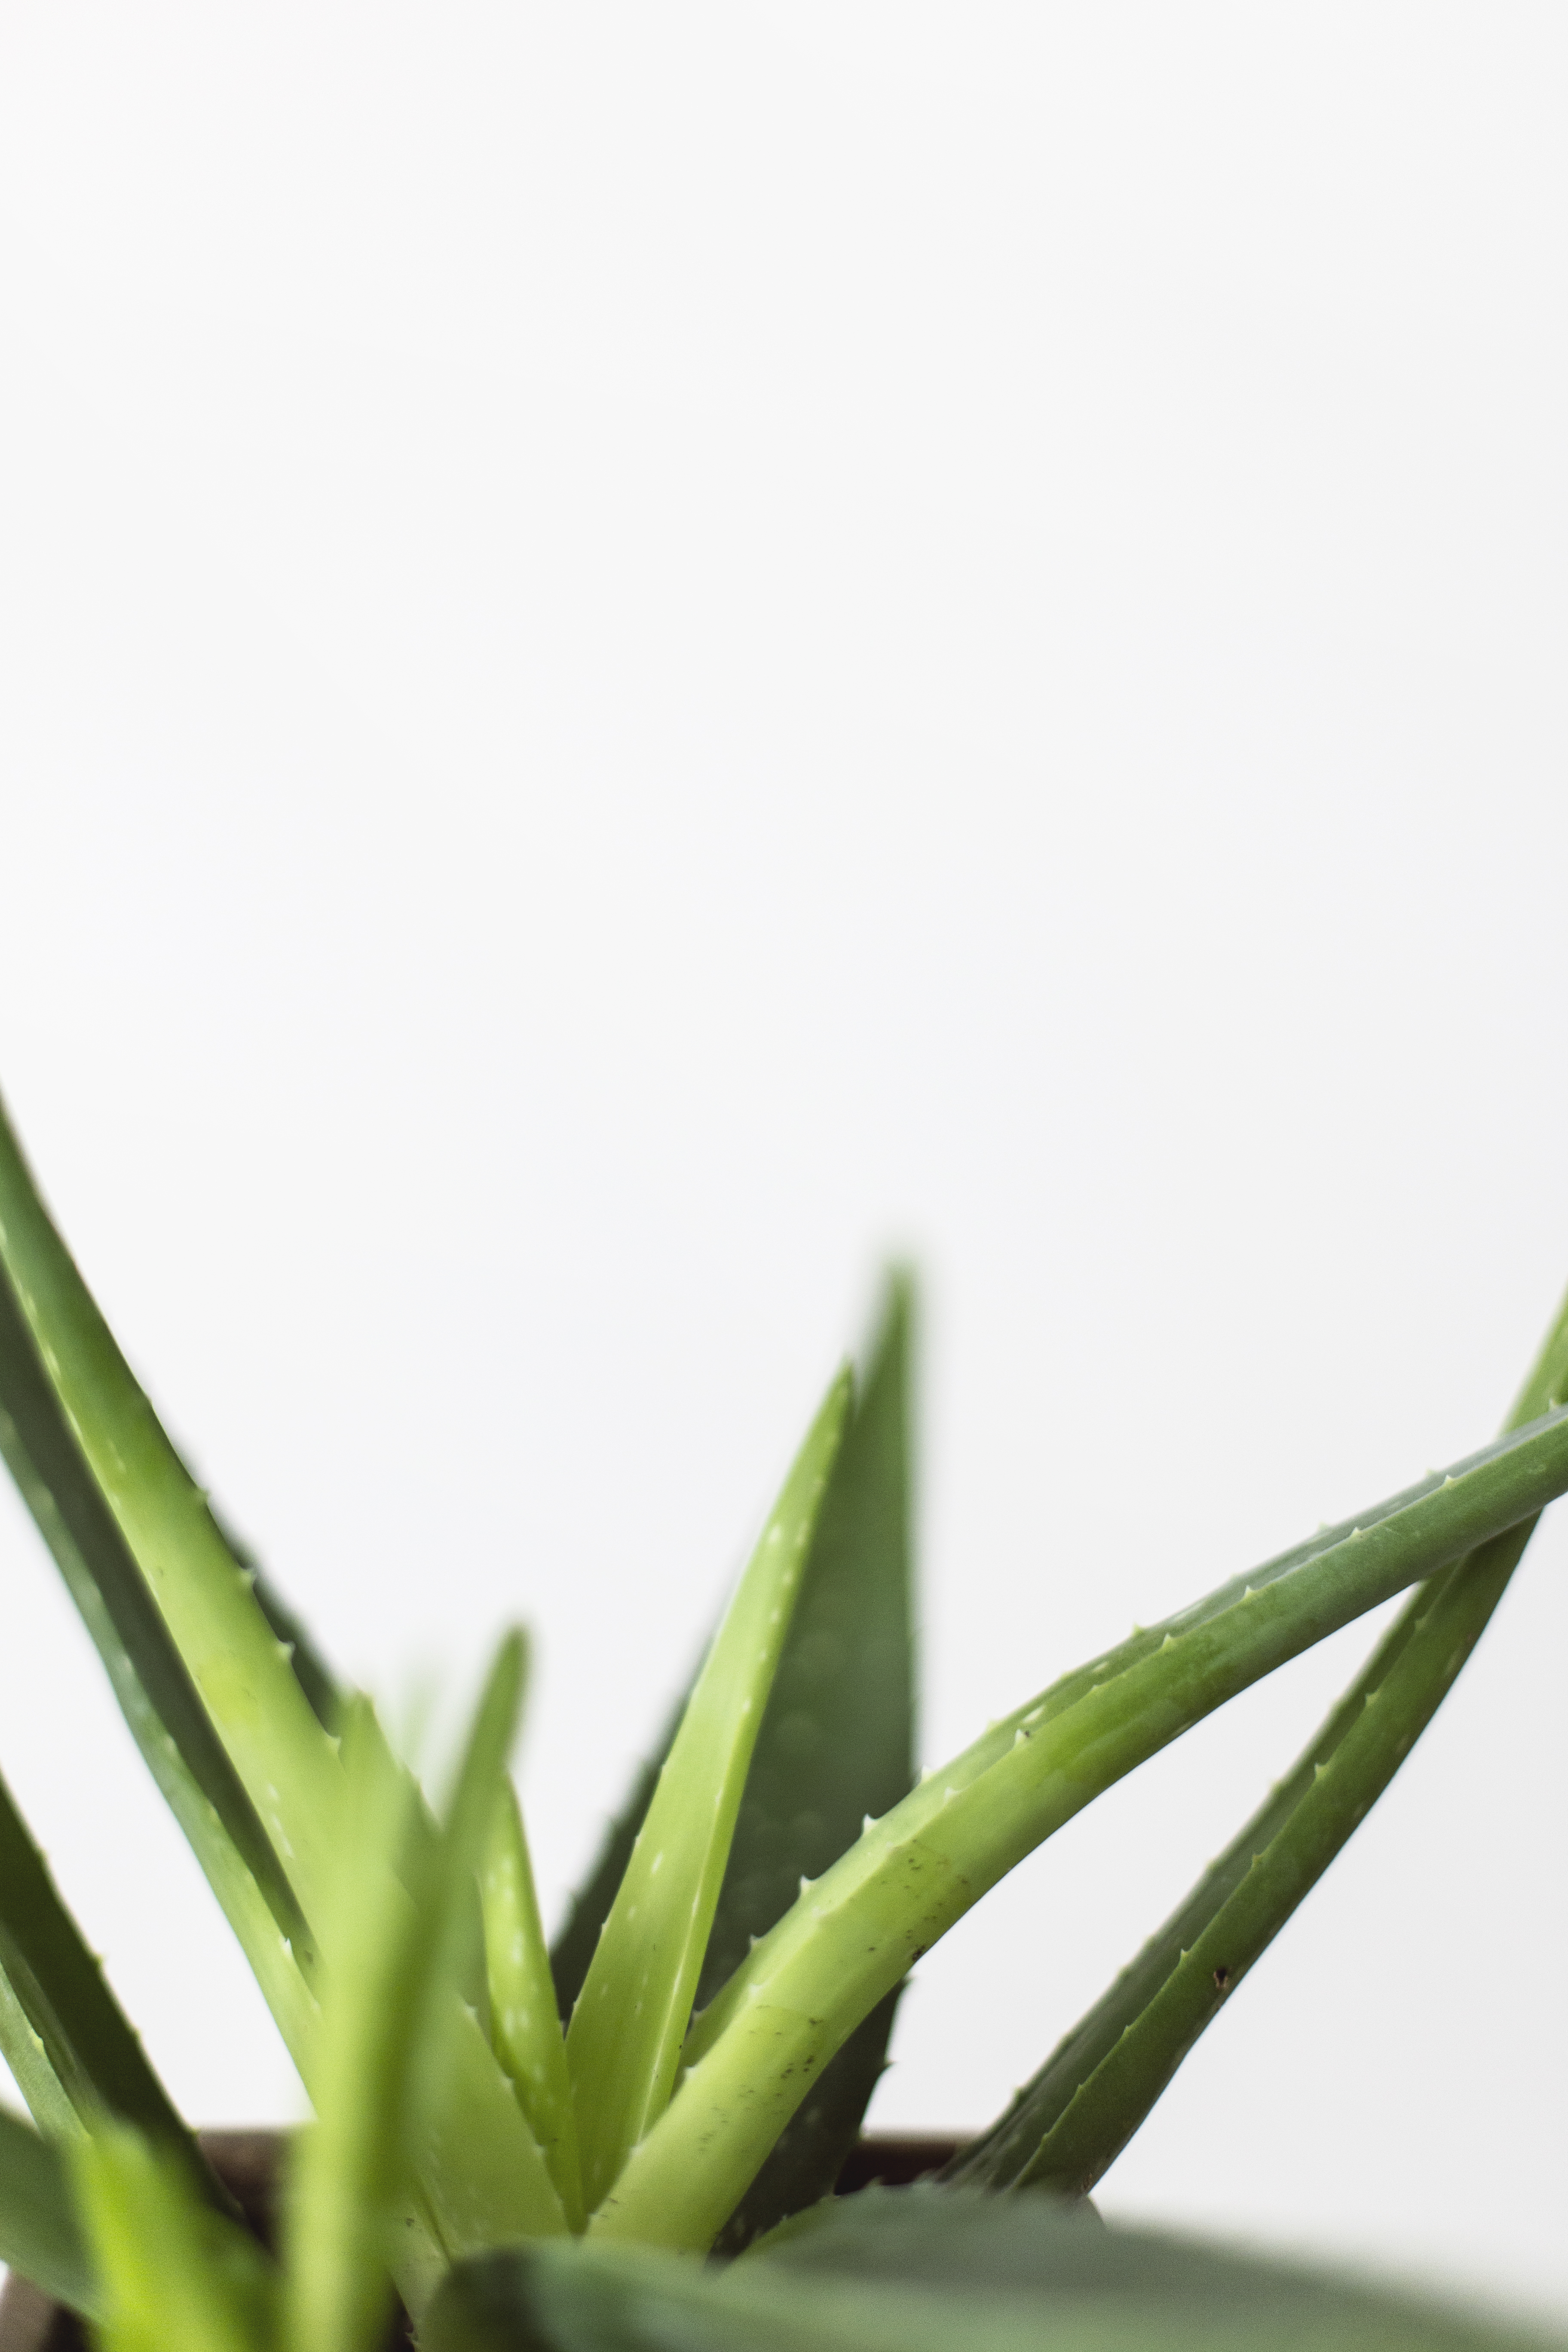 Alo Vera 100 Aloe Vera Pictures Hd Download Free Images On Unsplash